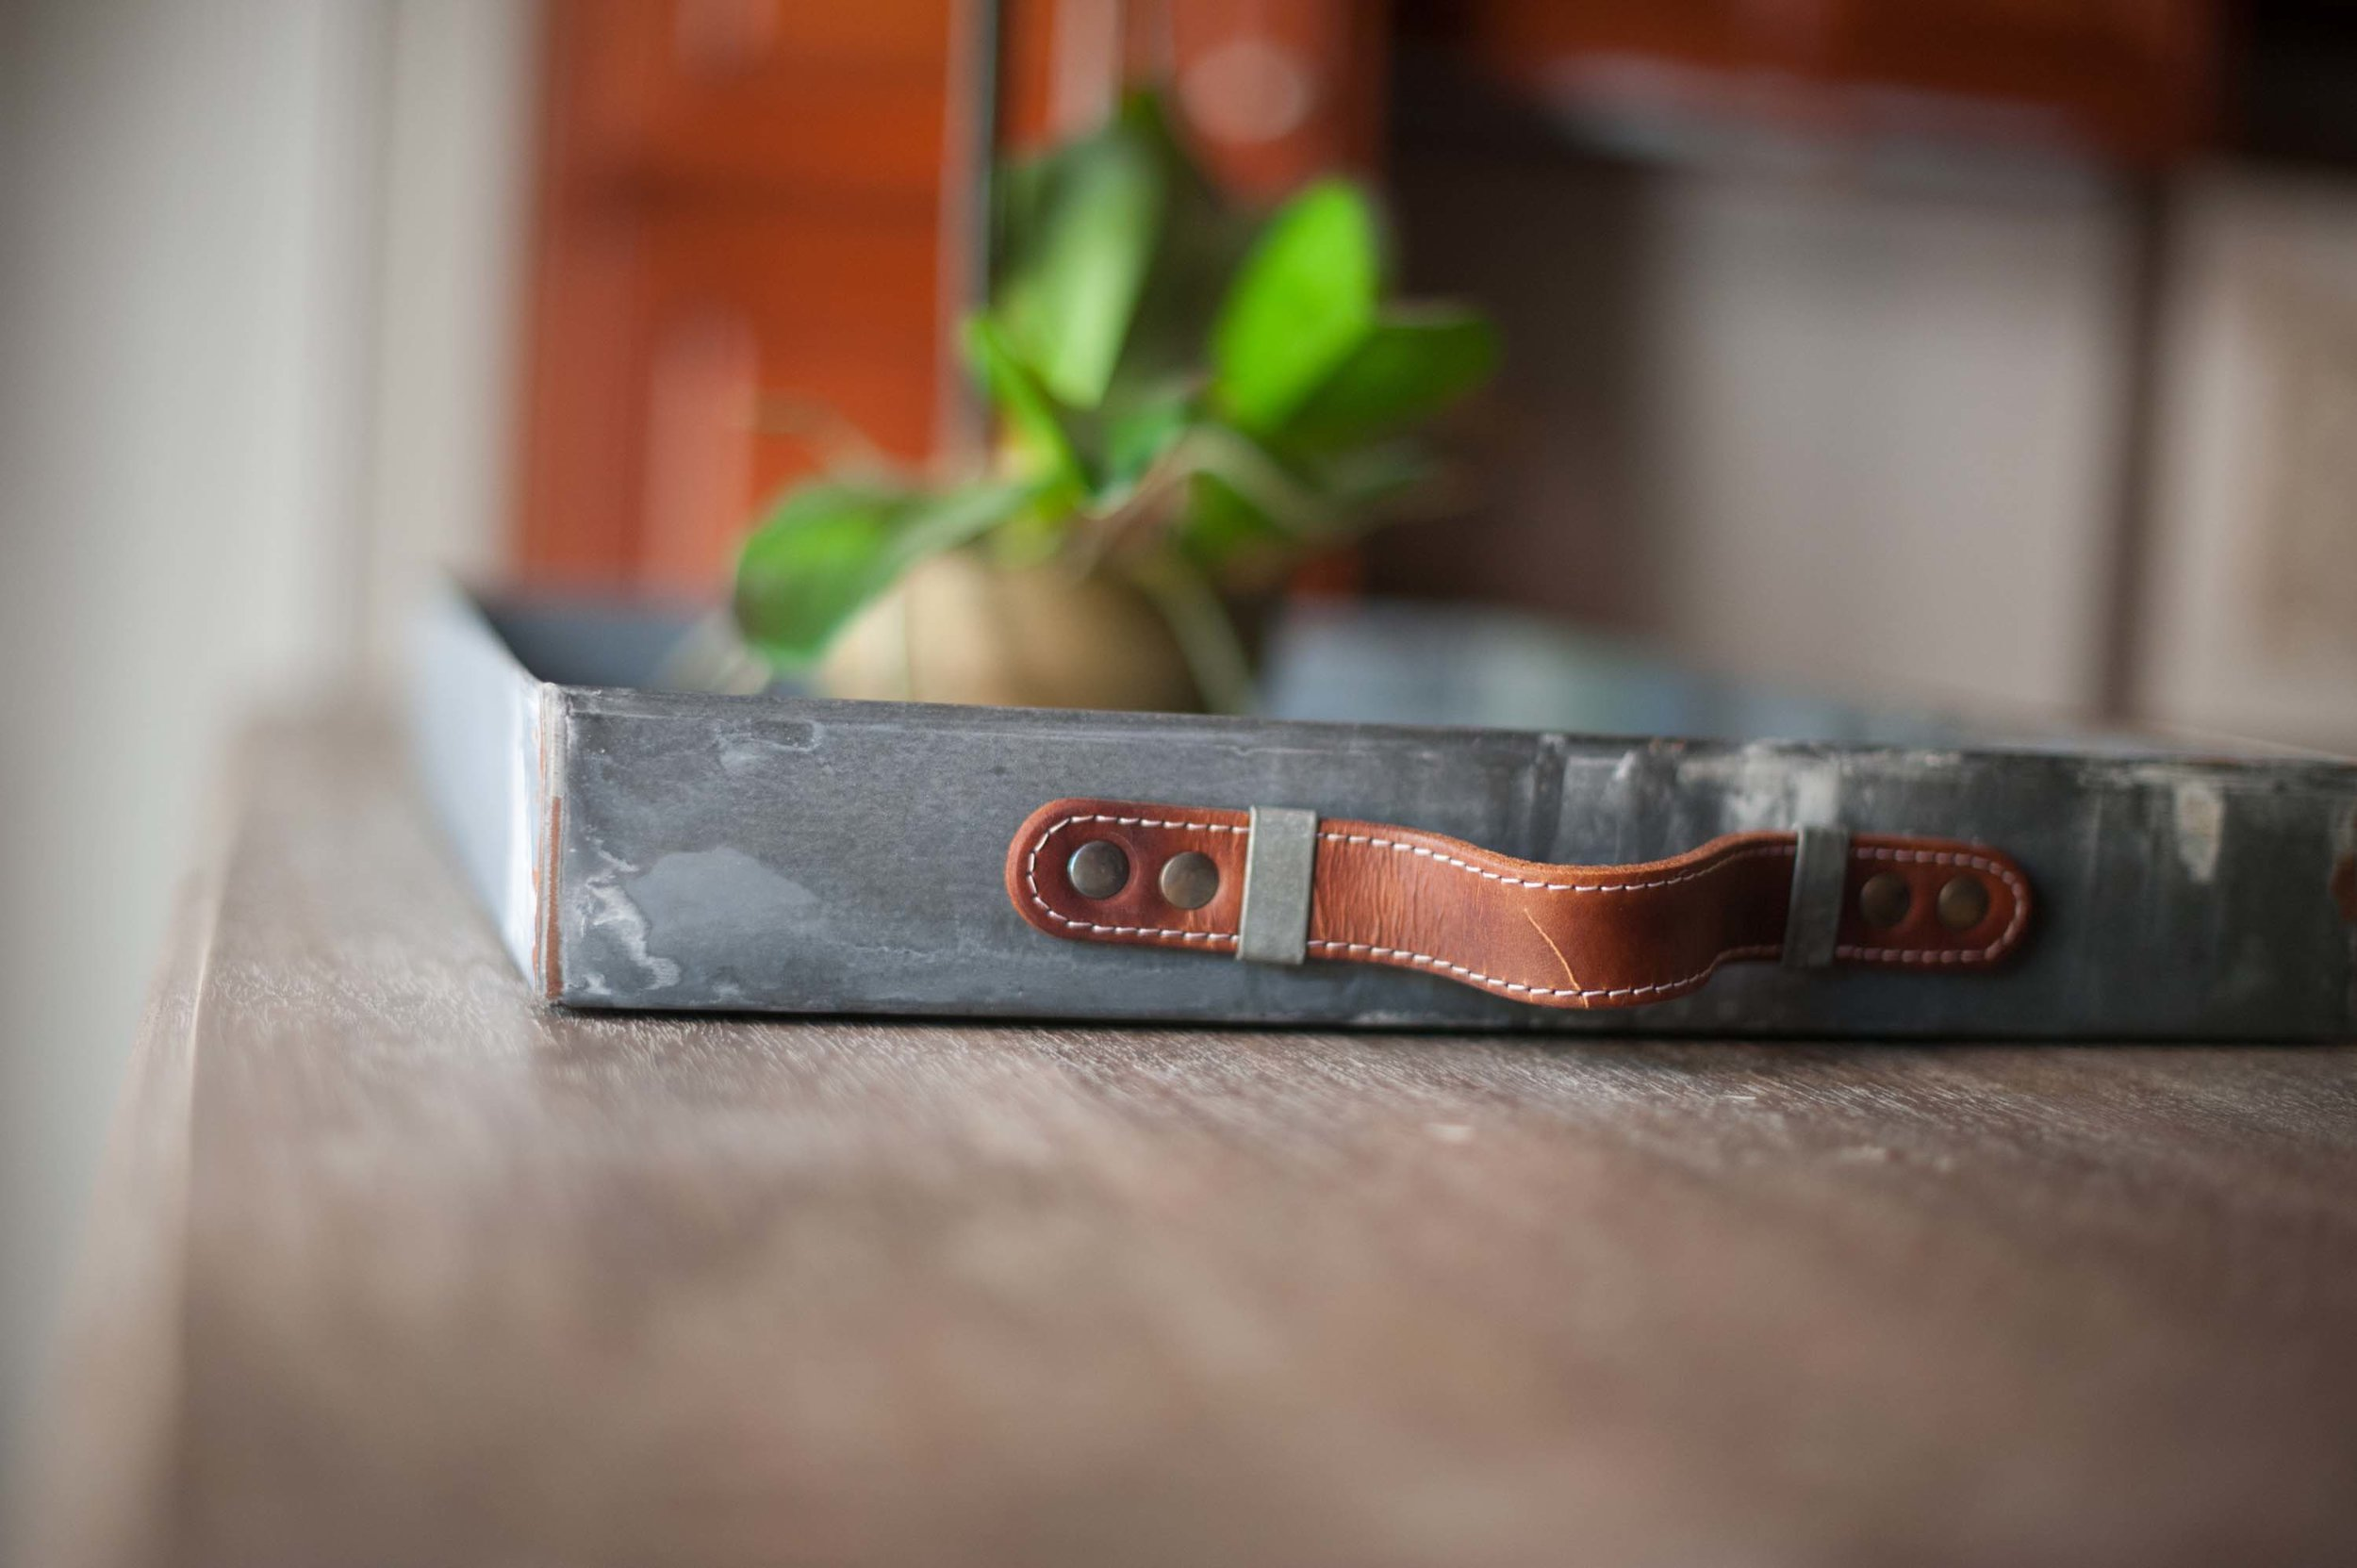 Aluminum tray with leather handle